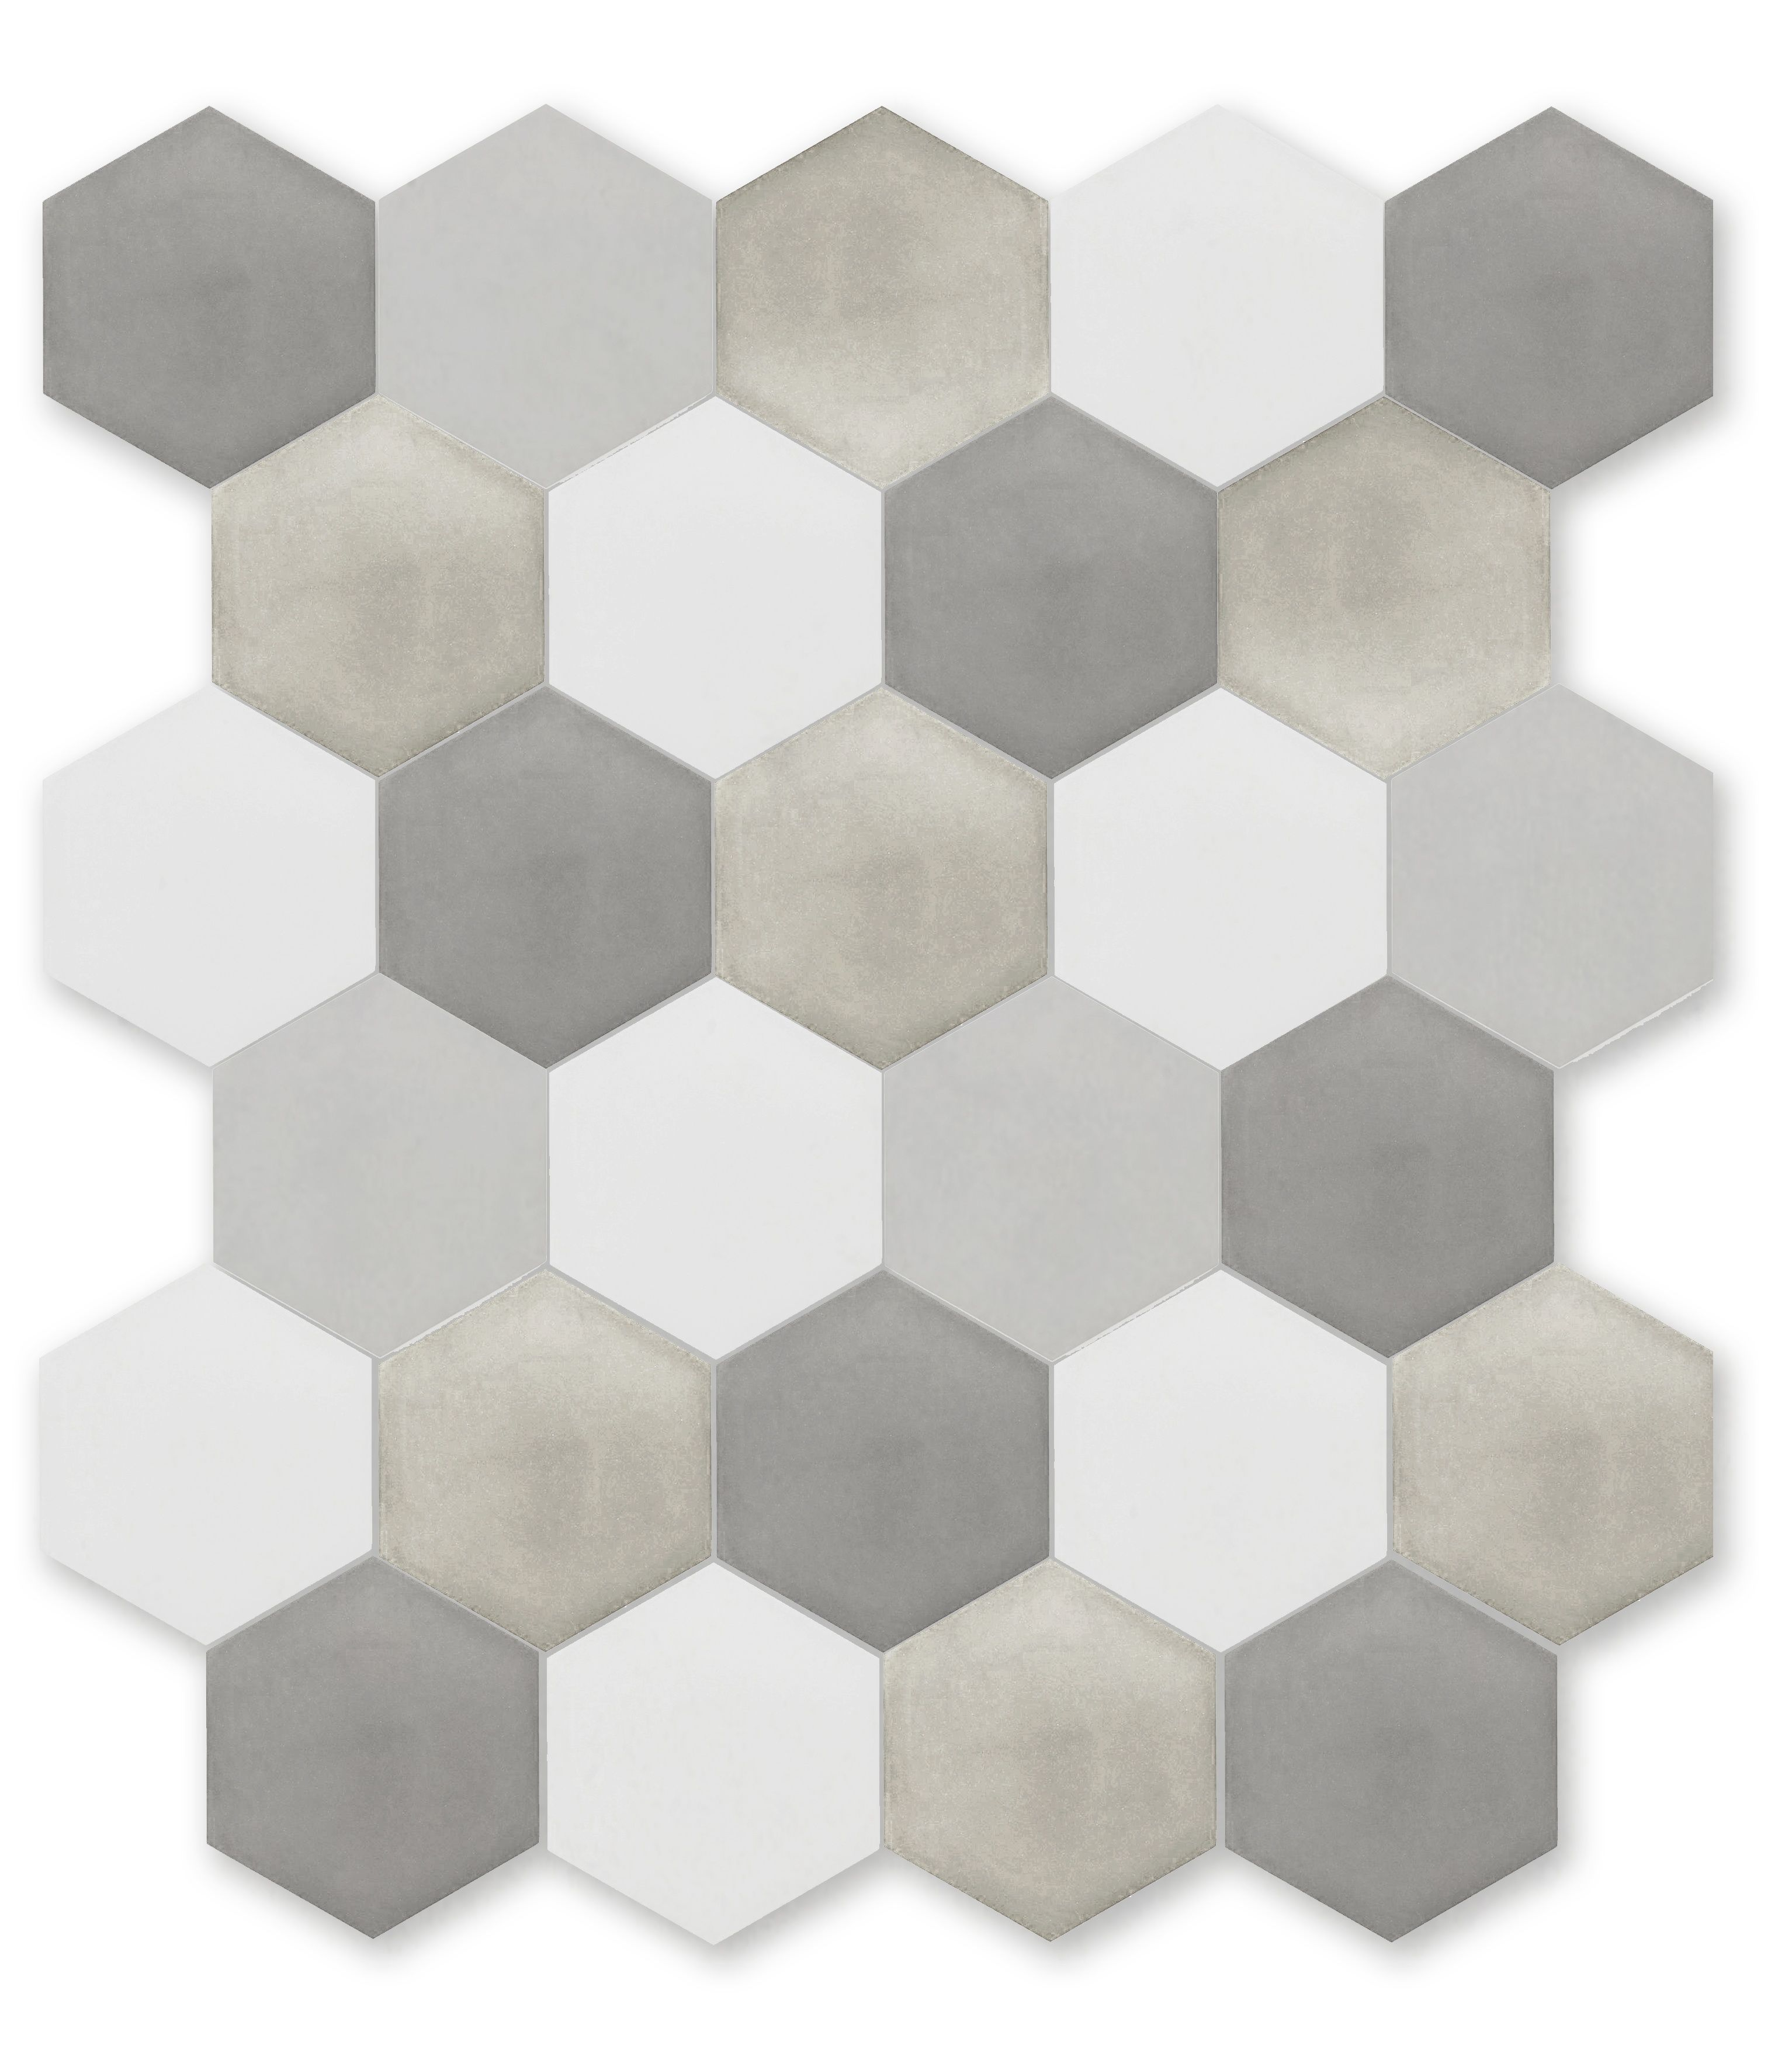 37+ Hexagon and square tile ideas in 2021